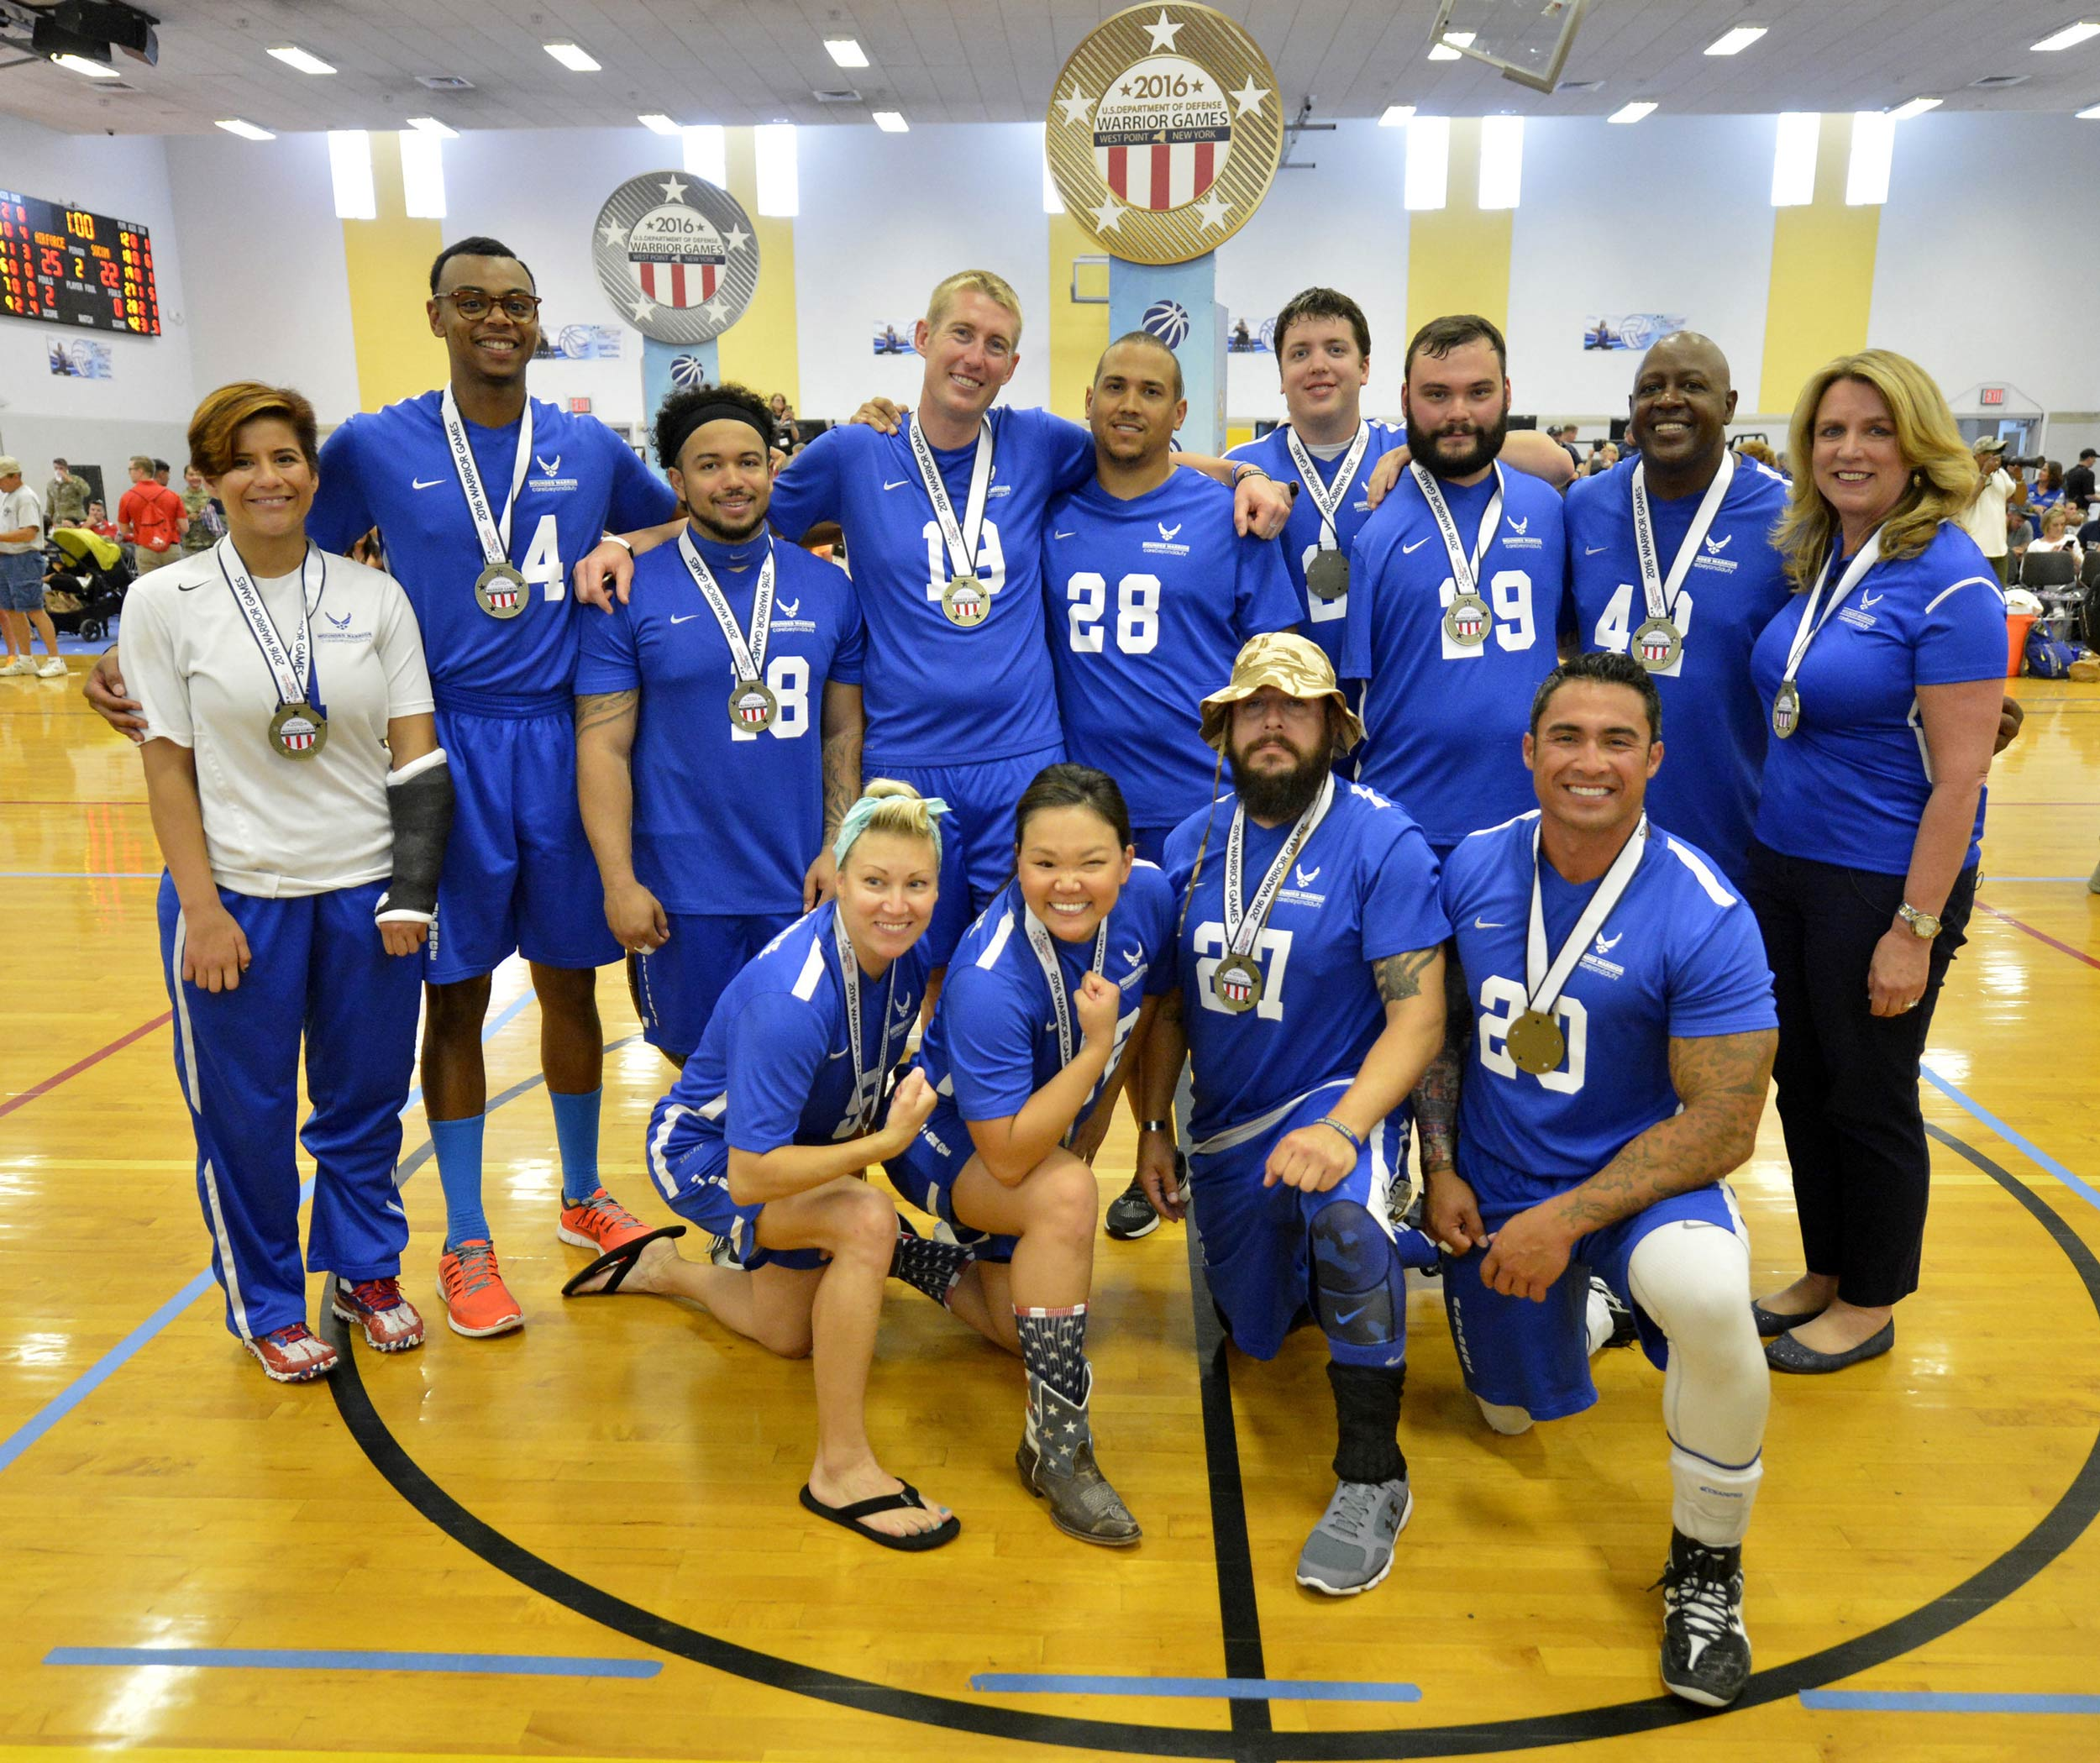 200 - Warriors CompetingThe 2017 Games promise to be memorable for the wounded warrior athletes, enjoyable for their caregivers and family members, and inspirational and educational for spectators and other supporters.